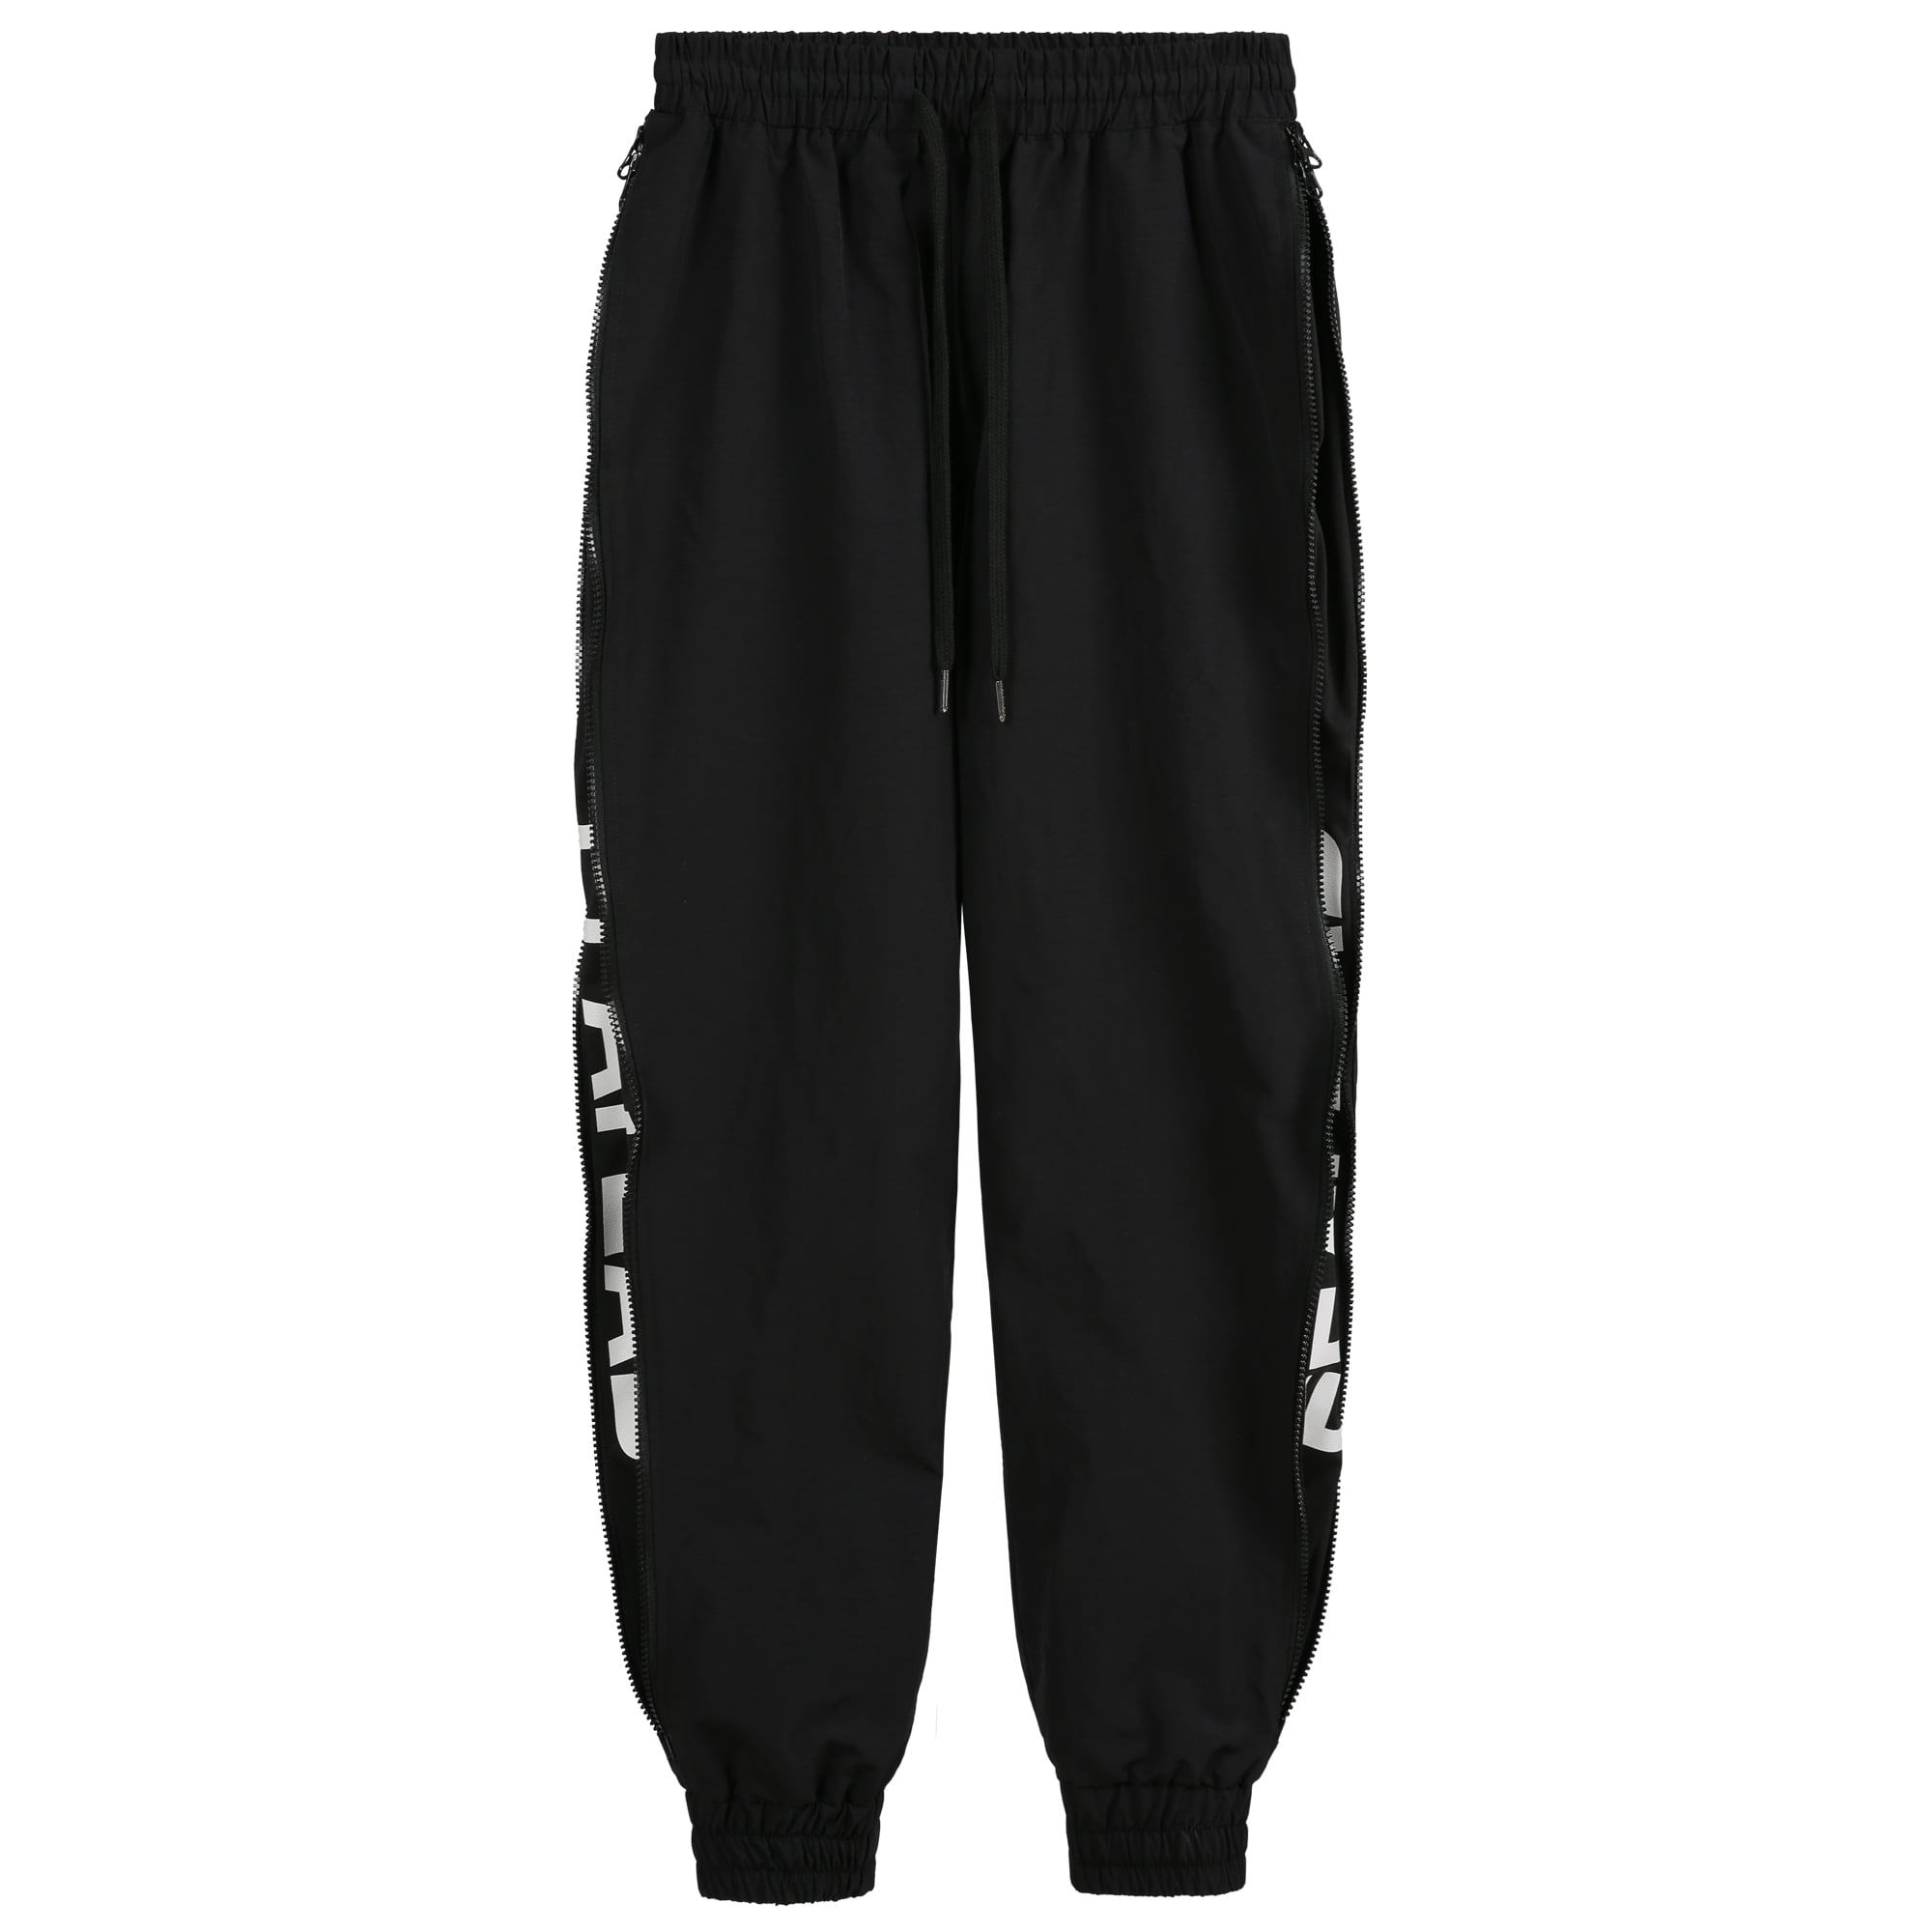 -[FFAI] - OP.01 SIDE LINE JOGGER PANTS (BLACK)